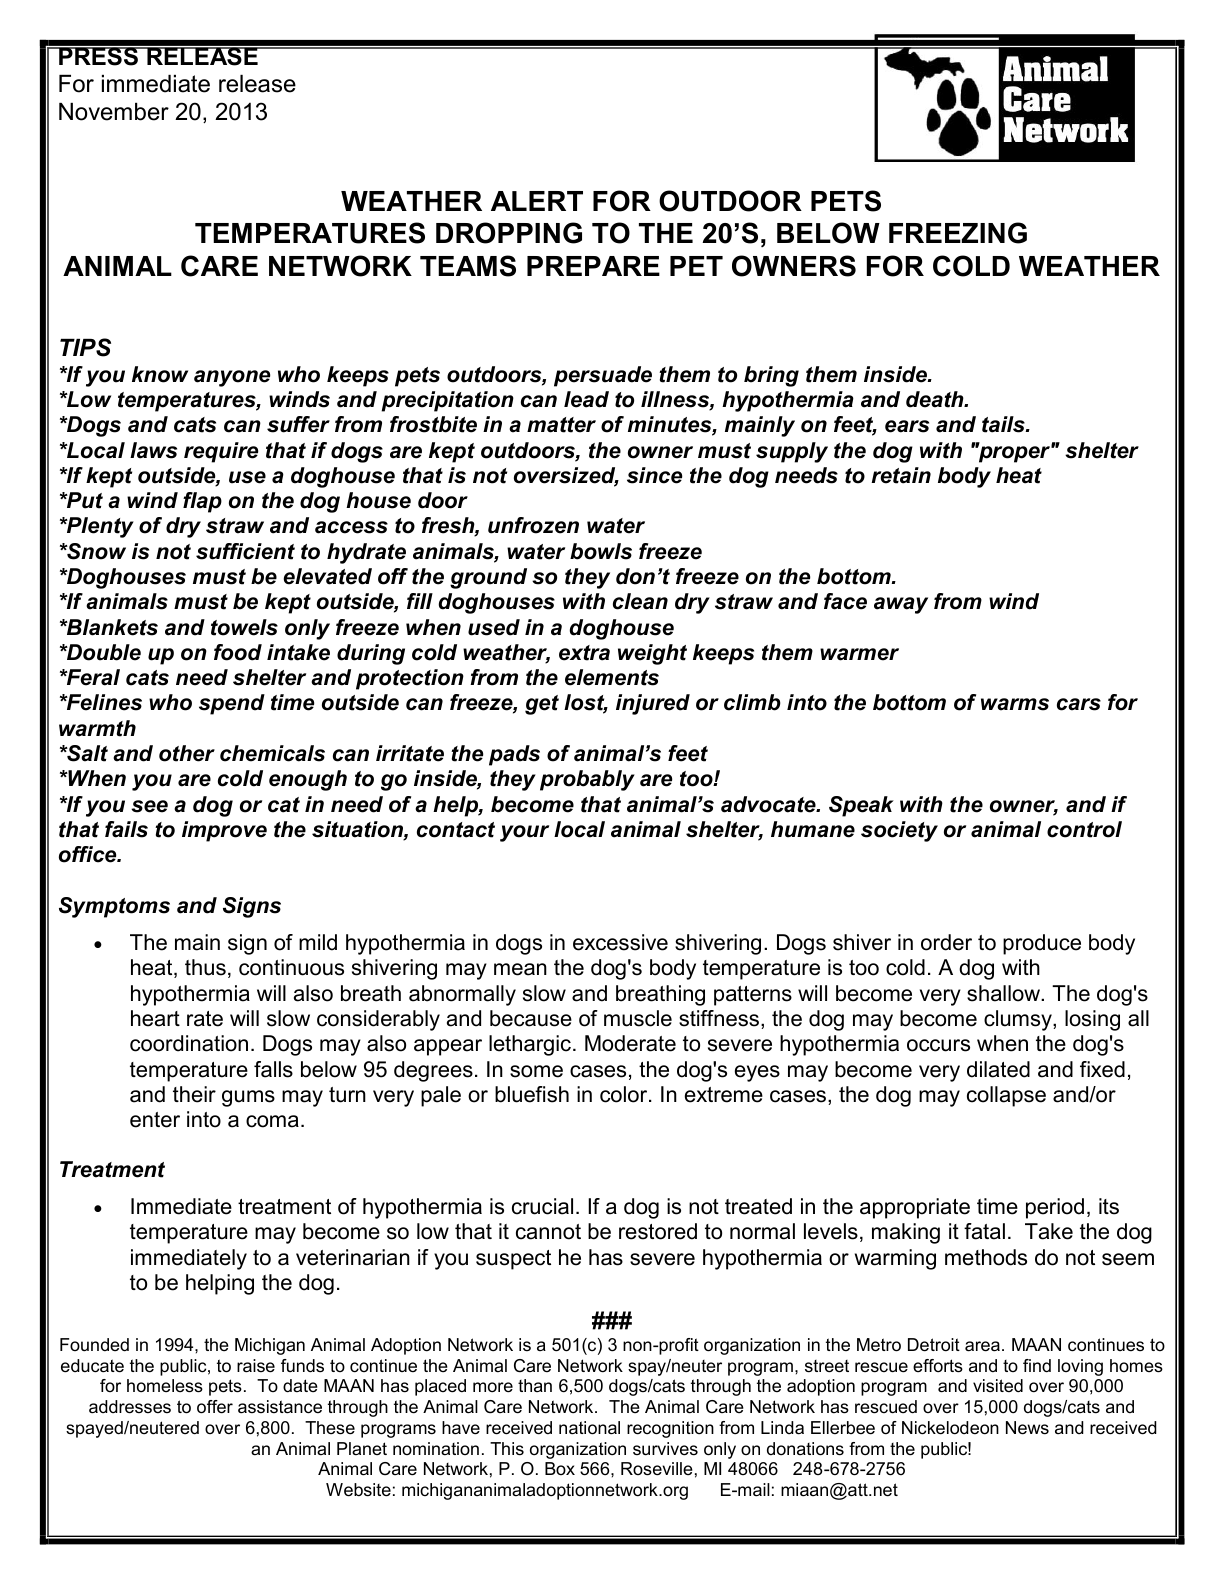 PRESS RELEASE COLD WEATHER ANIMAL CARE NETWORK 11-2013